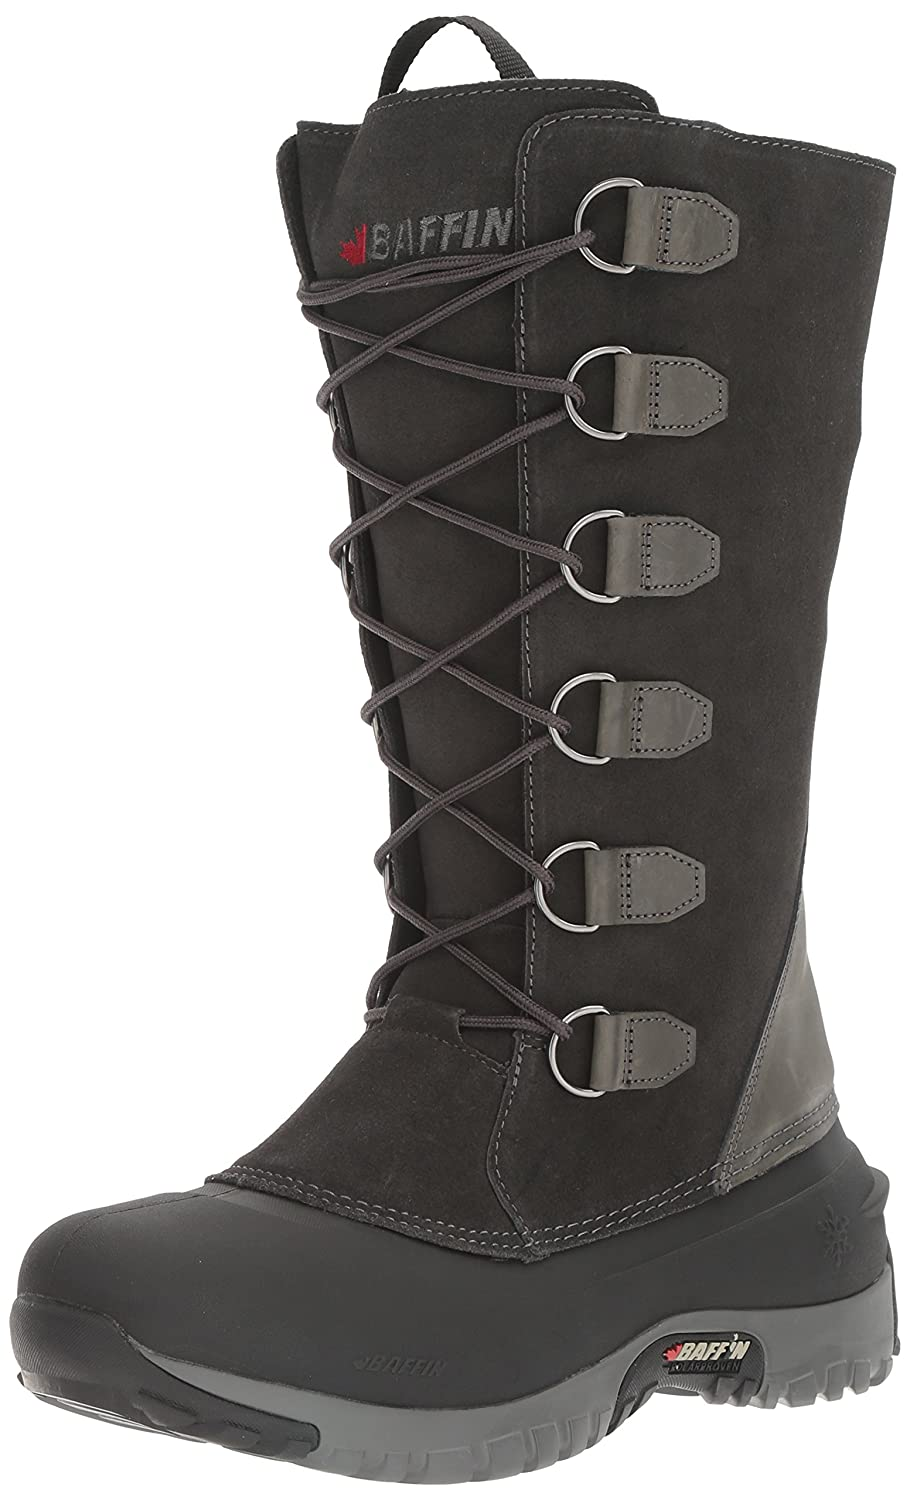 Baffin Women's Coco Insulated Suede Winter Boot B01JAECMWA 5 B(M) US|Charcoal